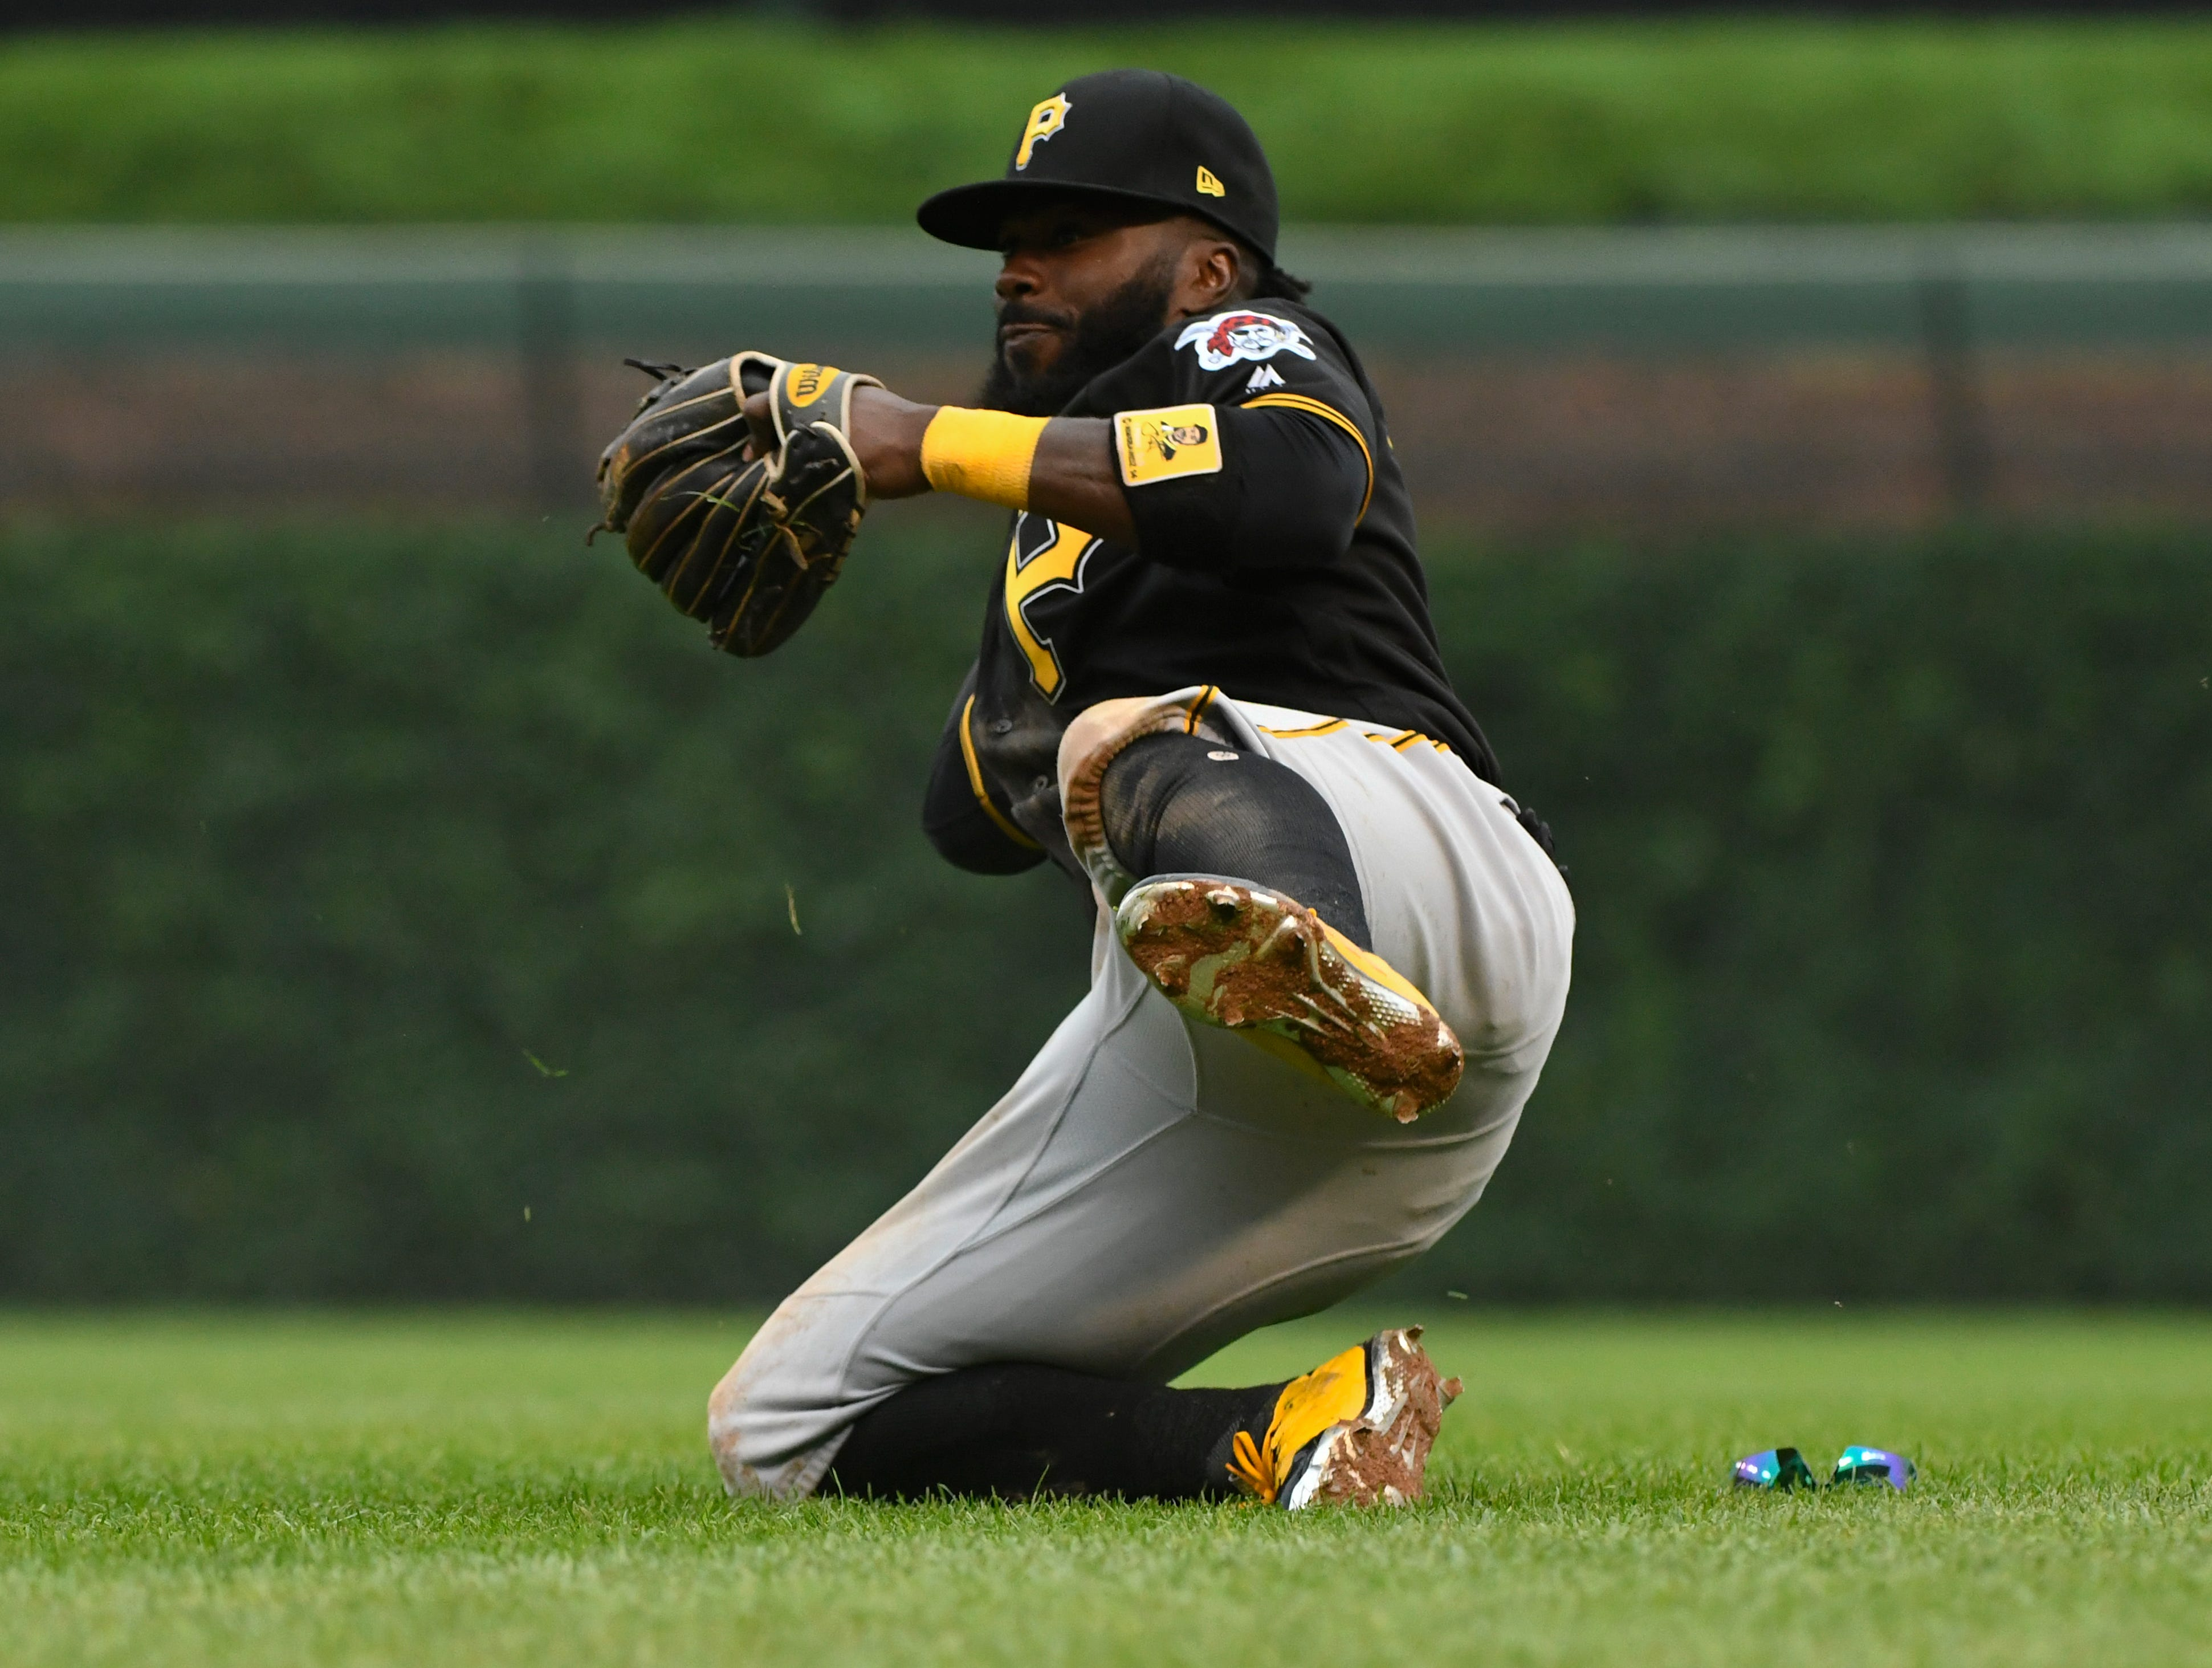 Pittsburgh Pirates second baseman Josh Harrison stops a ball hit by Chicago Cubs' Anthony Rizzo during the ninth inning of a baseball game on Sunday, June 10, 2018, in Chicago.